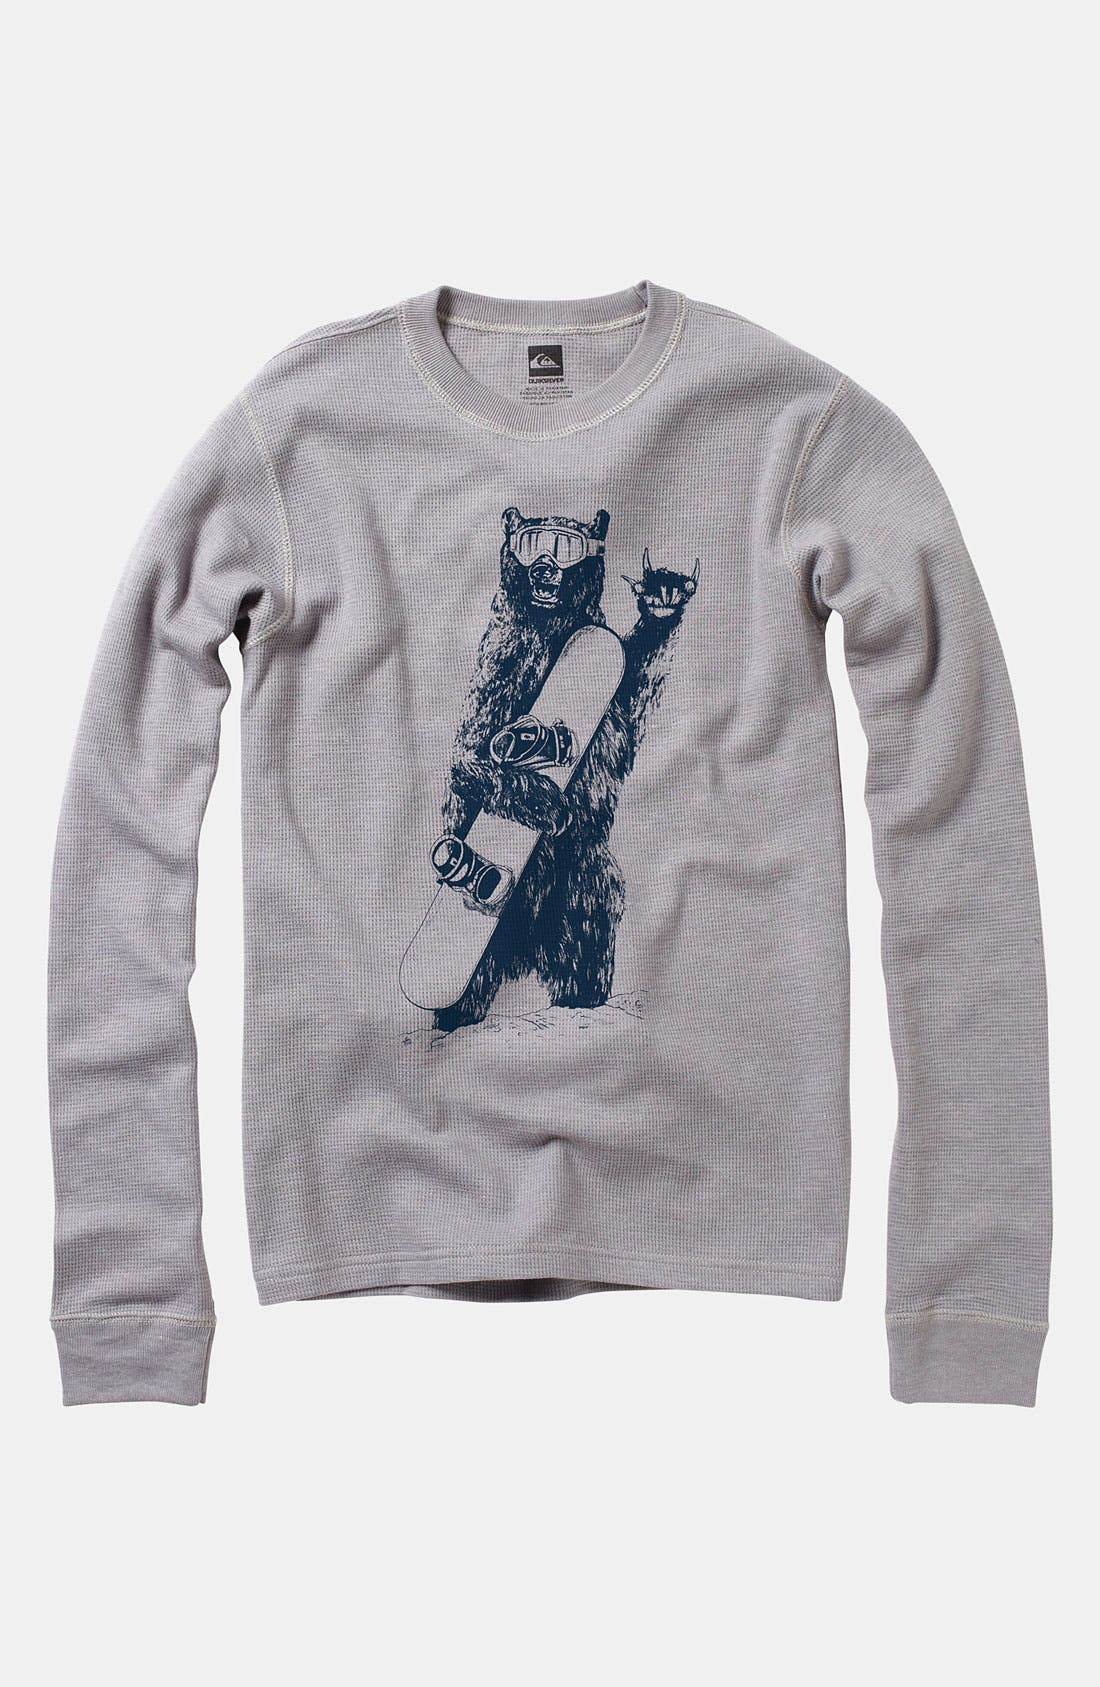 Alternate Image 1 Selected - Quiksilver 'Joyride' Thermal Top (Big Boys)